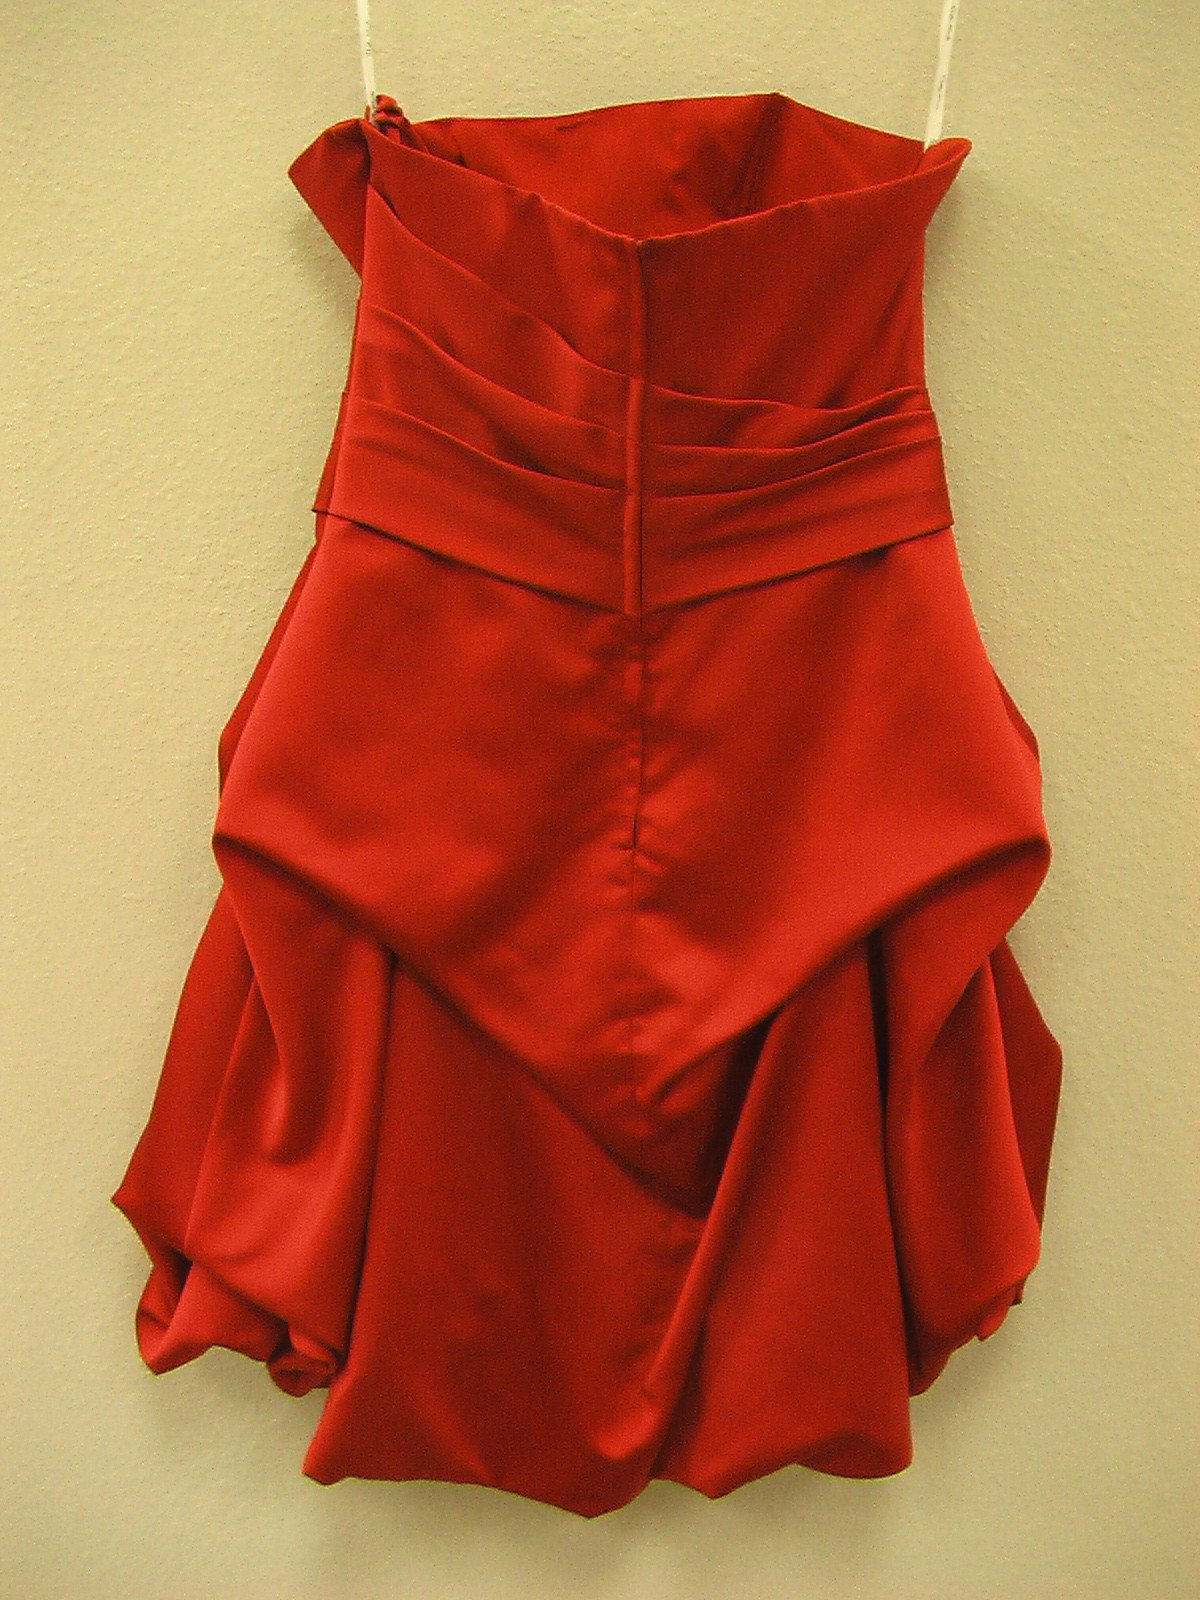 Pretty Maids 22336 Red size 12 In Stock Bridesmaid Dress - Tom's Bridal